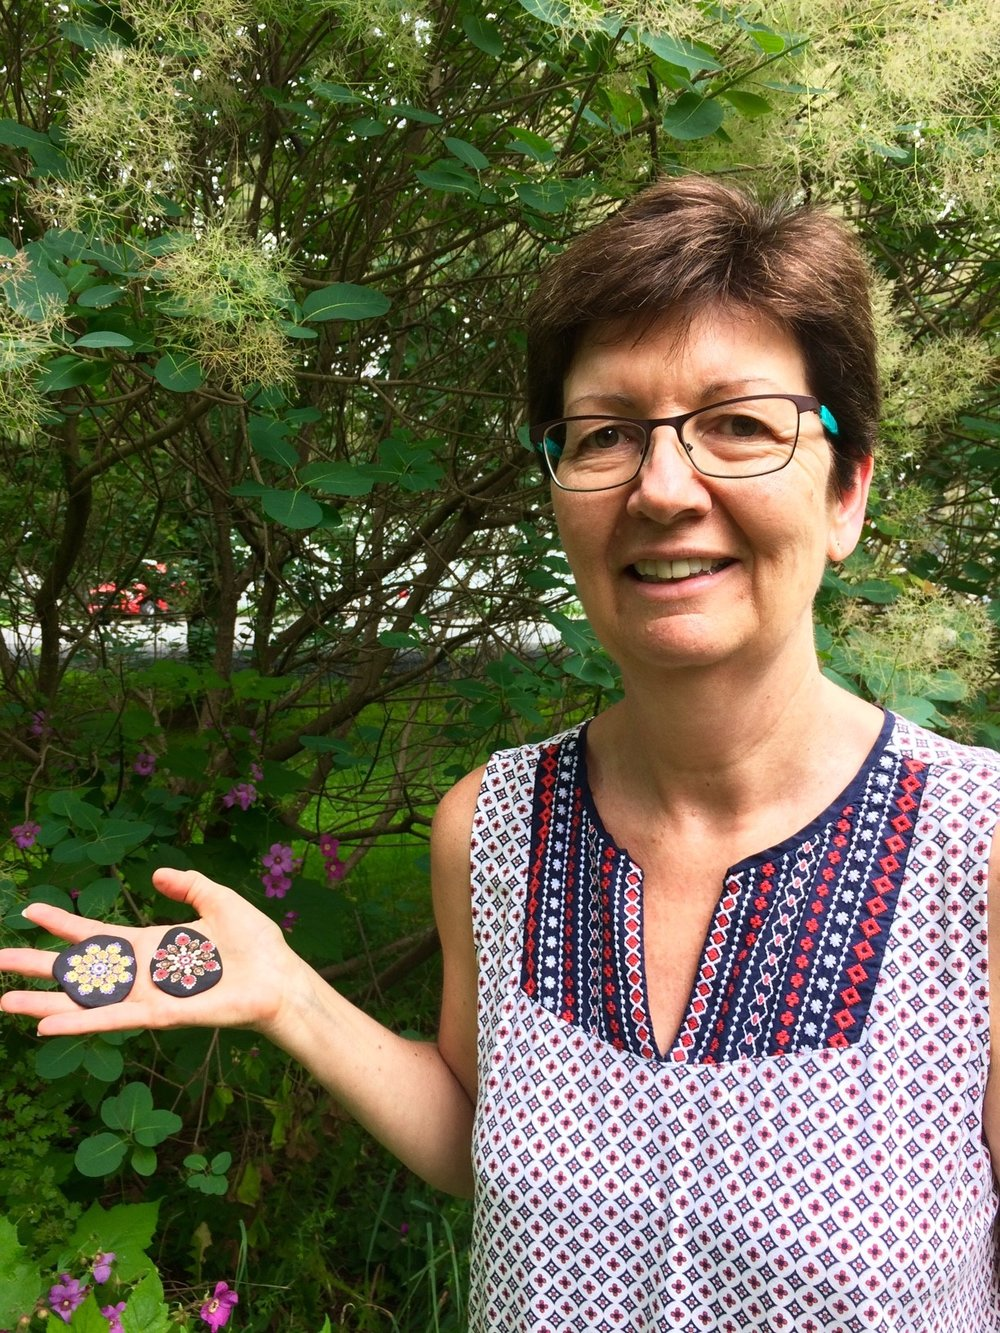 Sue's first Travelling Kindness Rock was mailed in July 2017.